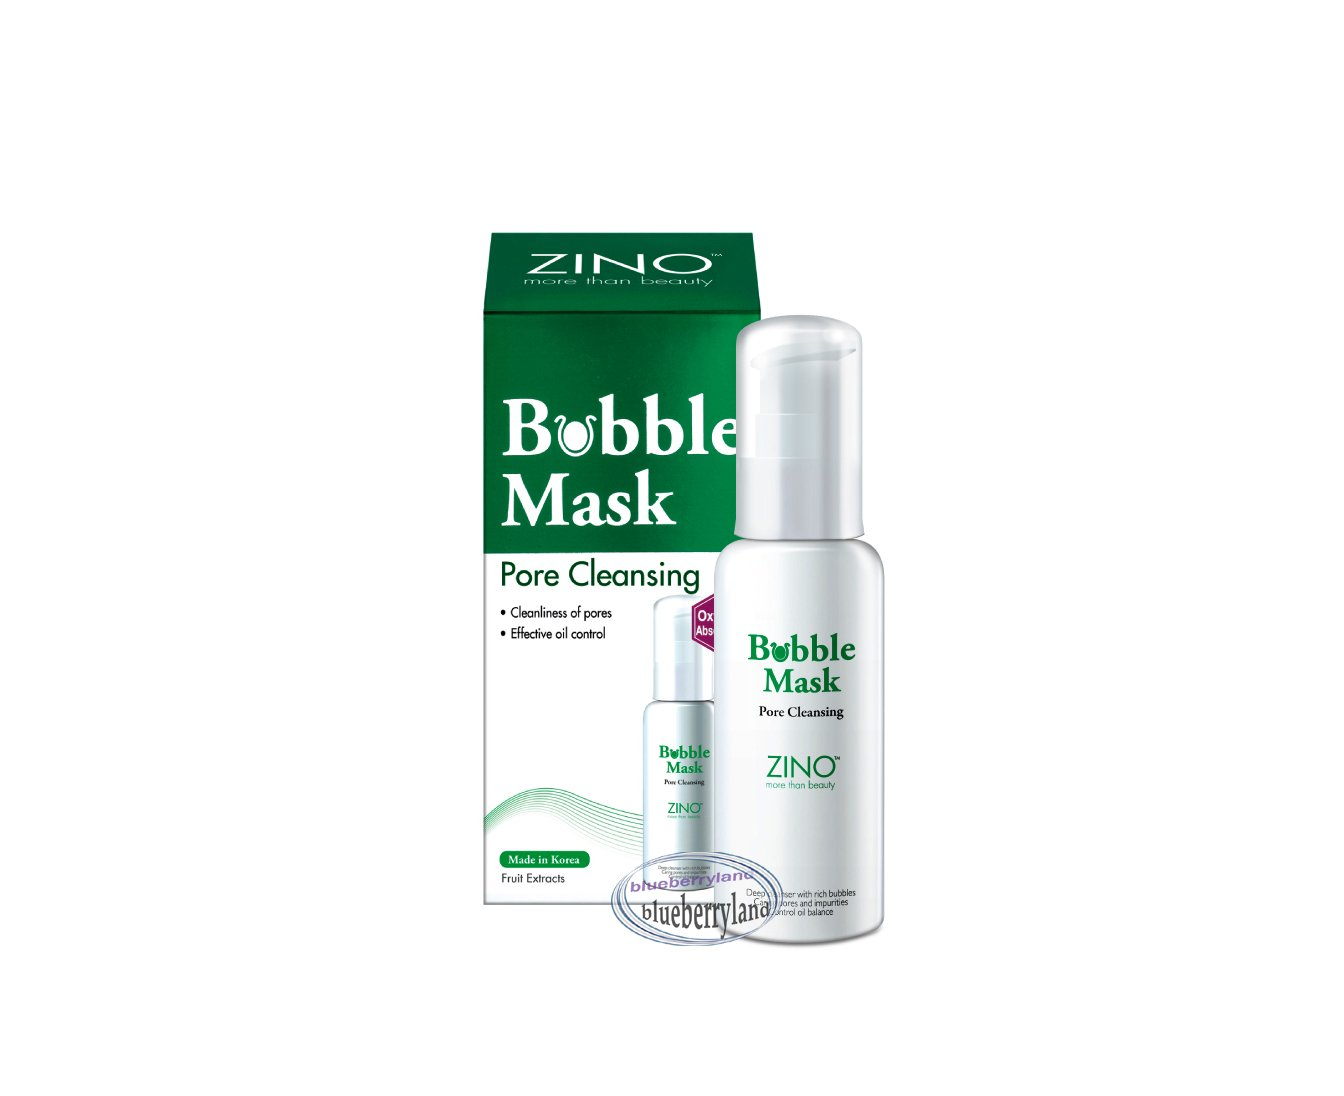 ZINO Bubble Mask Pore Cleansing 50ml skin care face cleanser beauty ladies girls